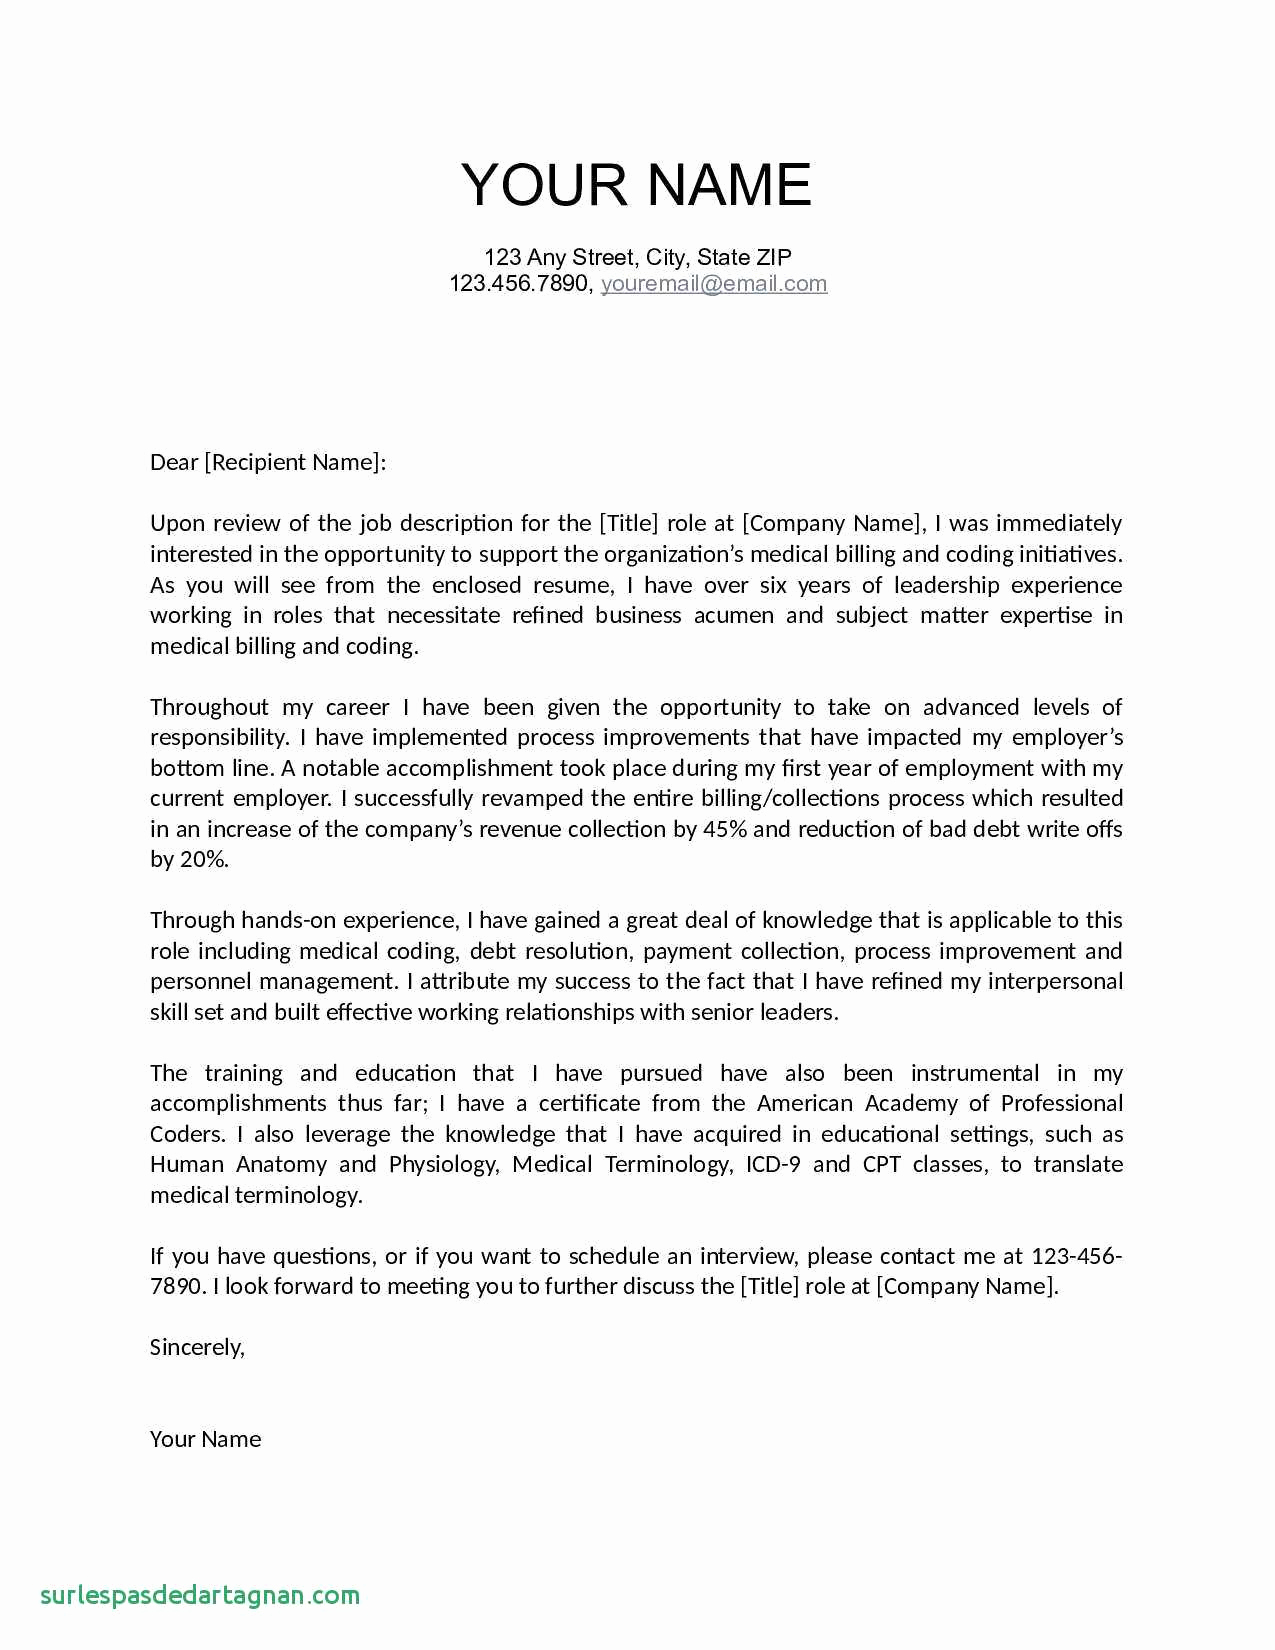 Cleaning Business Introduction Letter Template - Cleaner Job Description for Resume Best Job Fer Letter Template